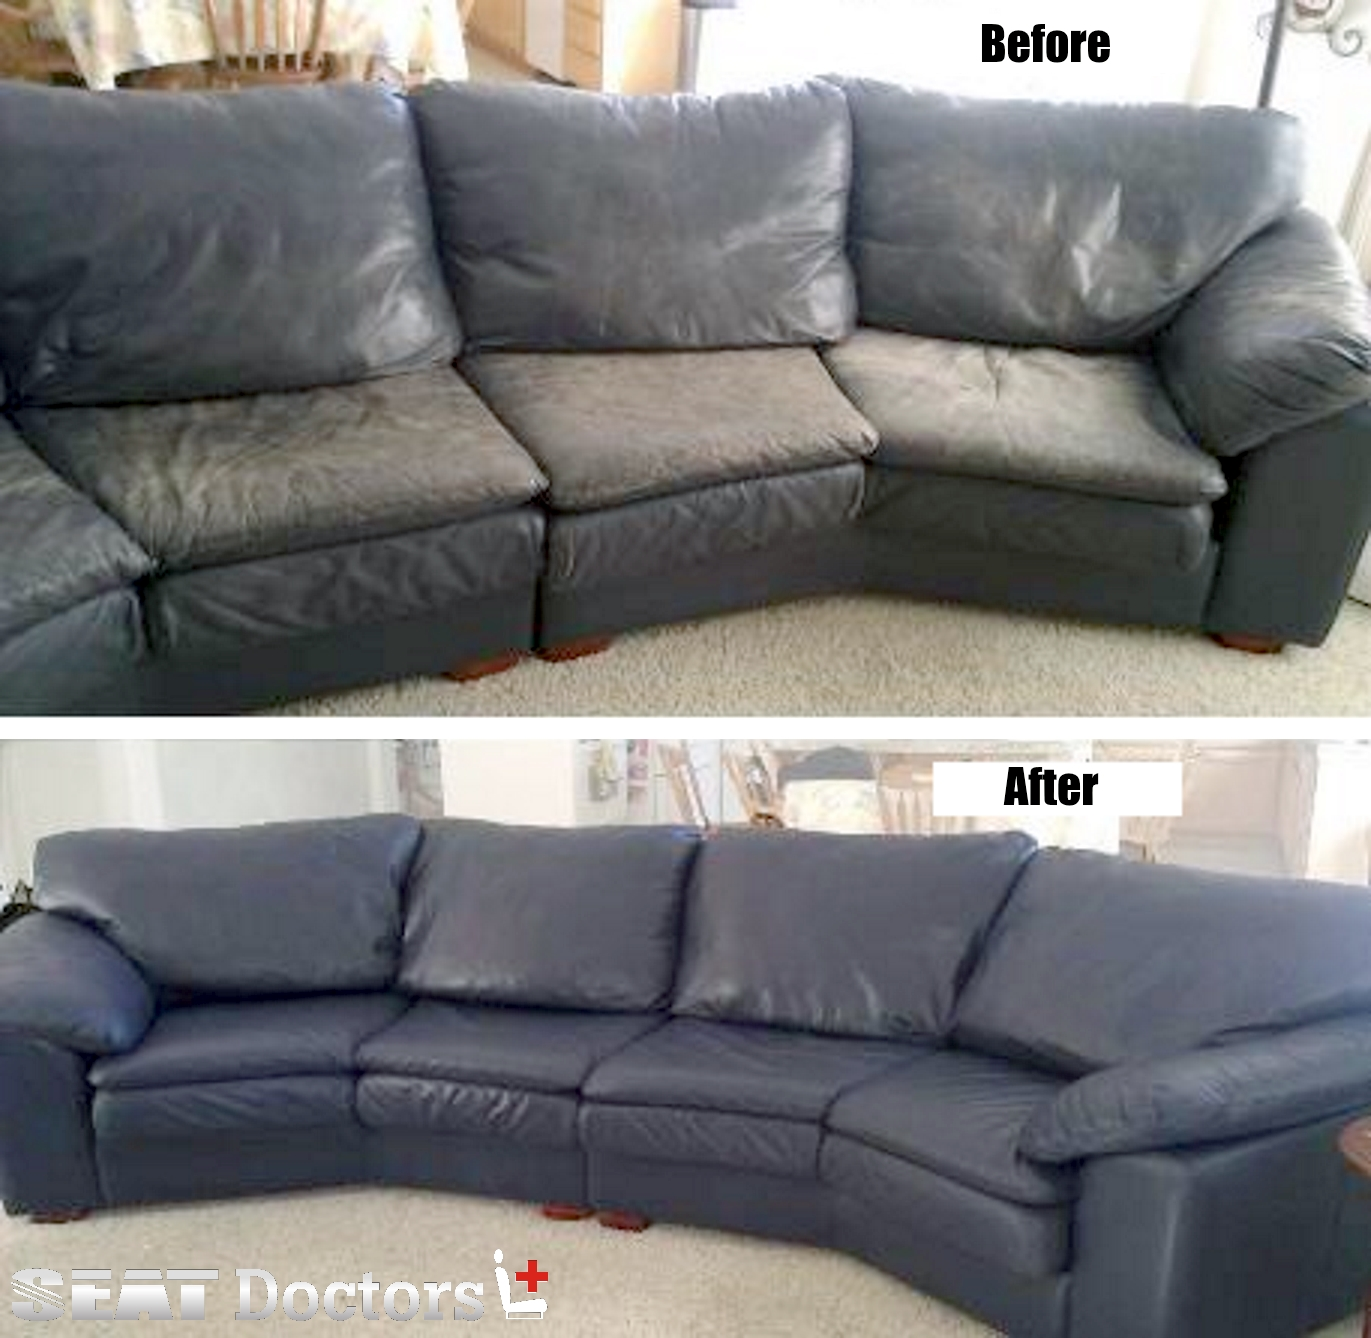 Sofa Color Restoration.jpg